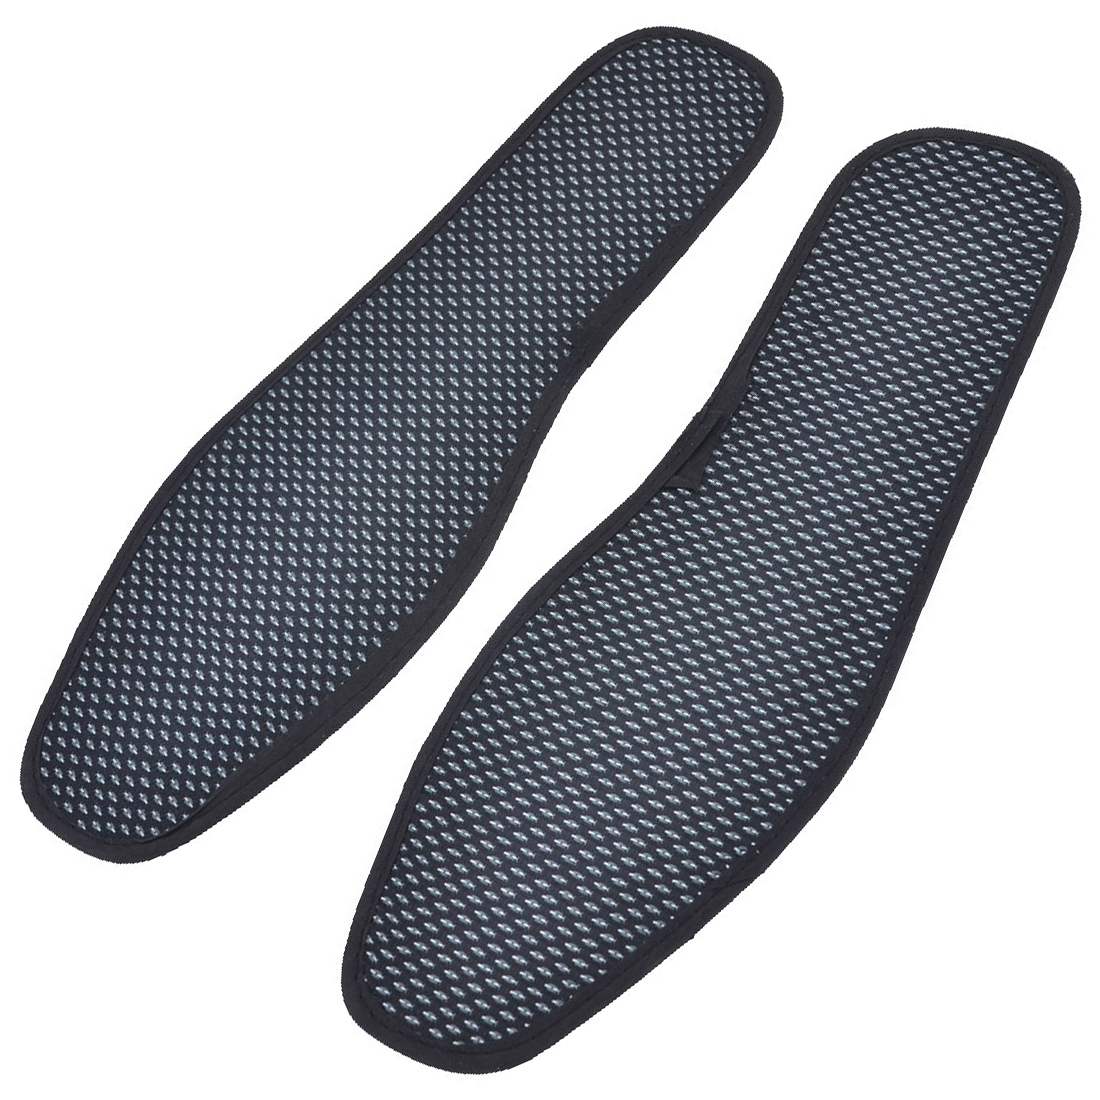 Pair Textured Nonslip Shoe Pads Insoles Black White UK Size 8.5 for Men